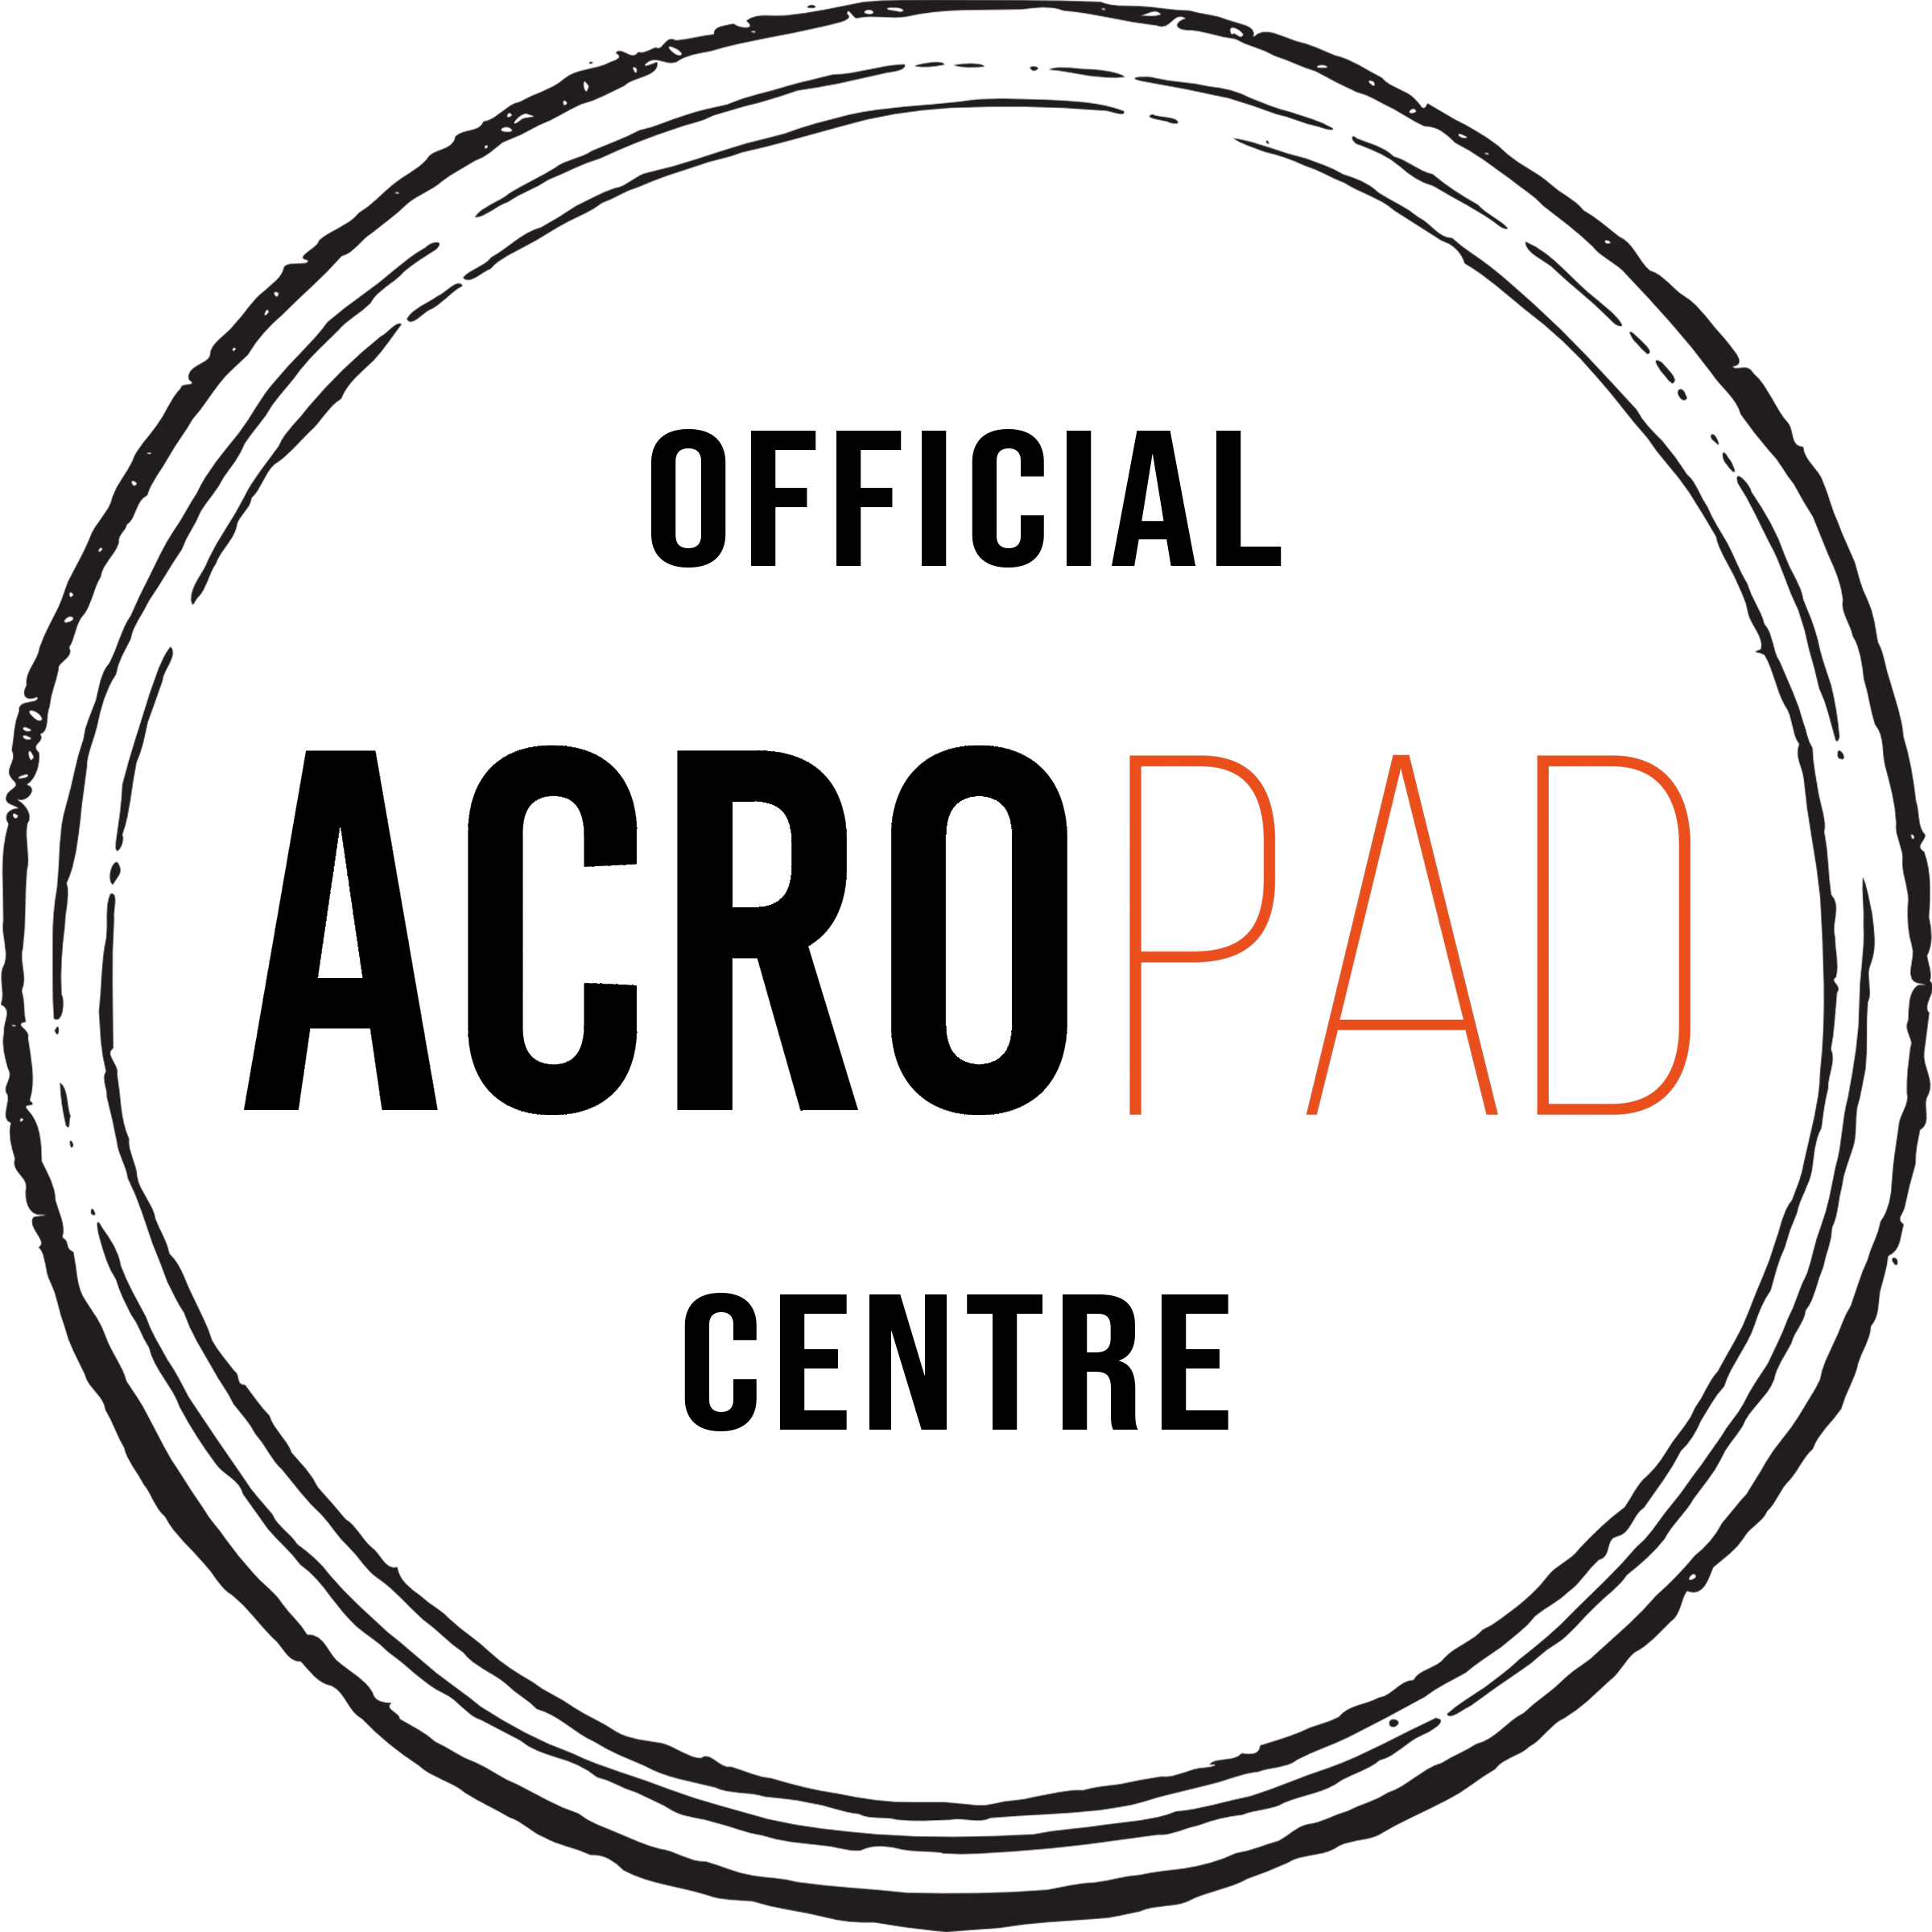 AcroPAD Centres - Be an AcroPAD Centre today by ordering product for your studio! Join the AcroPAD family!We currently have over 70 AcroPAD Centres and are constantly growing!Perks:Customer Support around the clock - no matter the issue!Official AcroPAD Centre logo for your websiteExclusive AcroPAD contentAcroPAD Centre Competitions and giveaways!Promotional video & graphic - with your own logo!Closed Facebook group to discuss all things AcroPAD!Exclusive Facebook live sessionsInstagram Live sessions…And more!